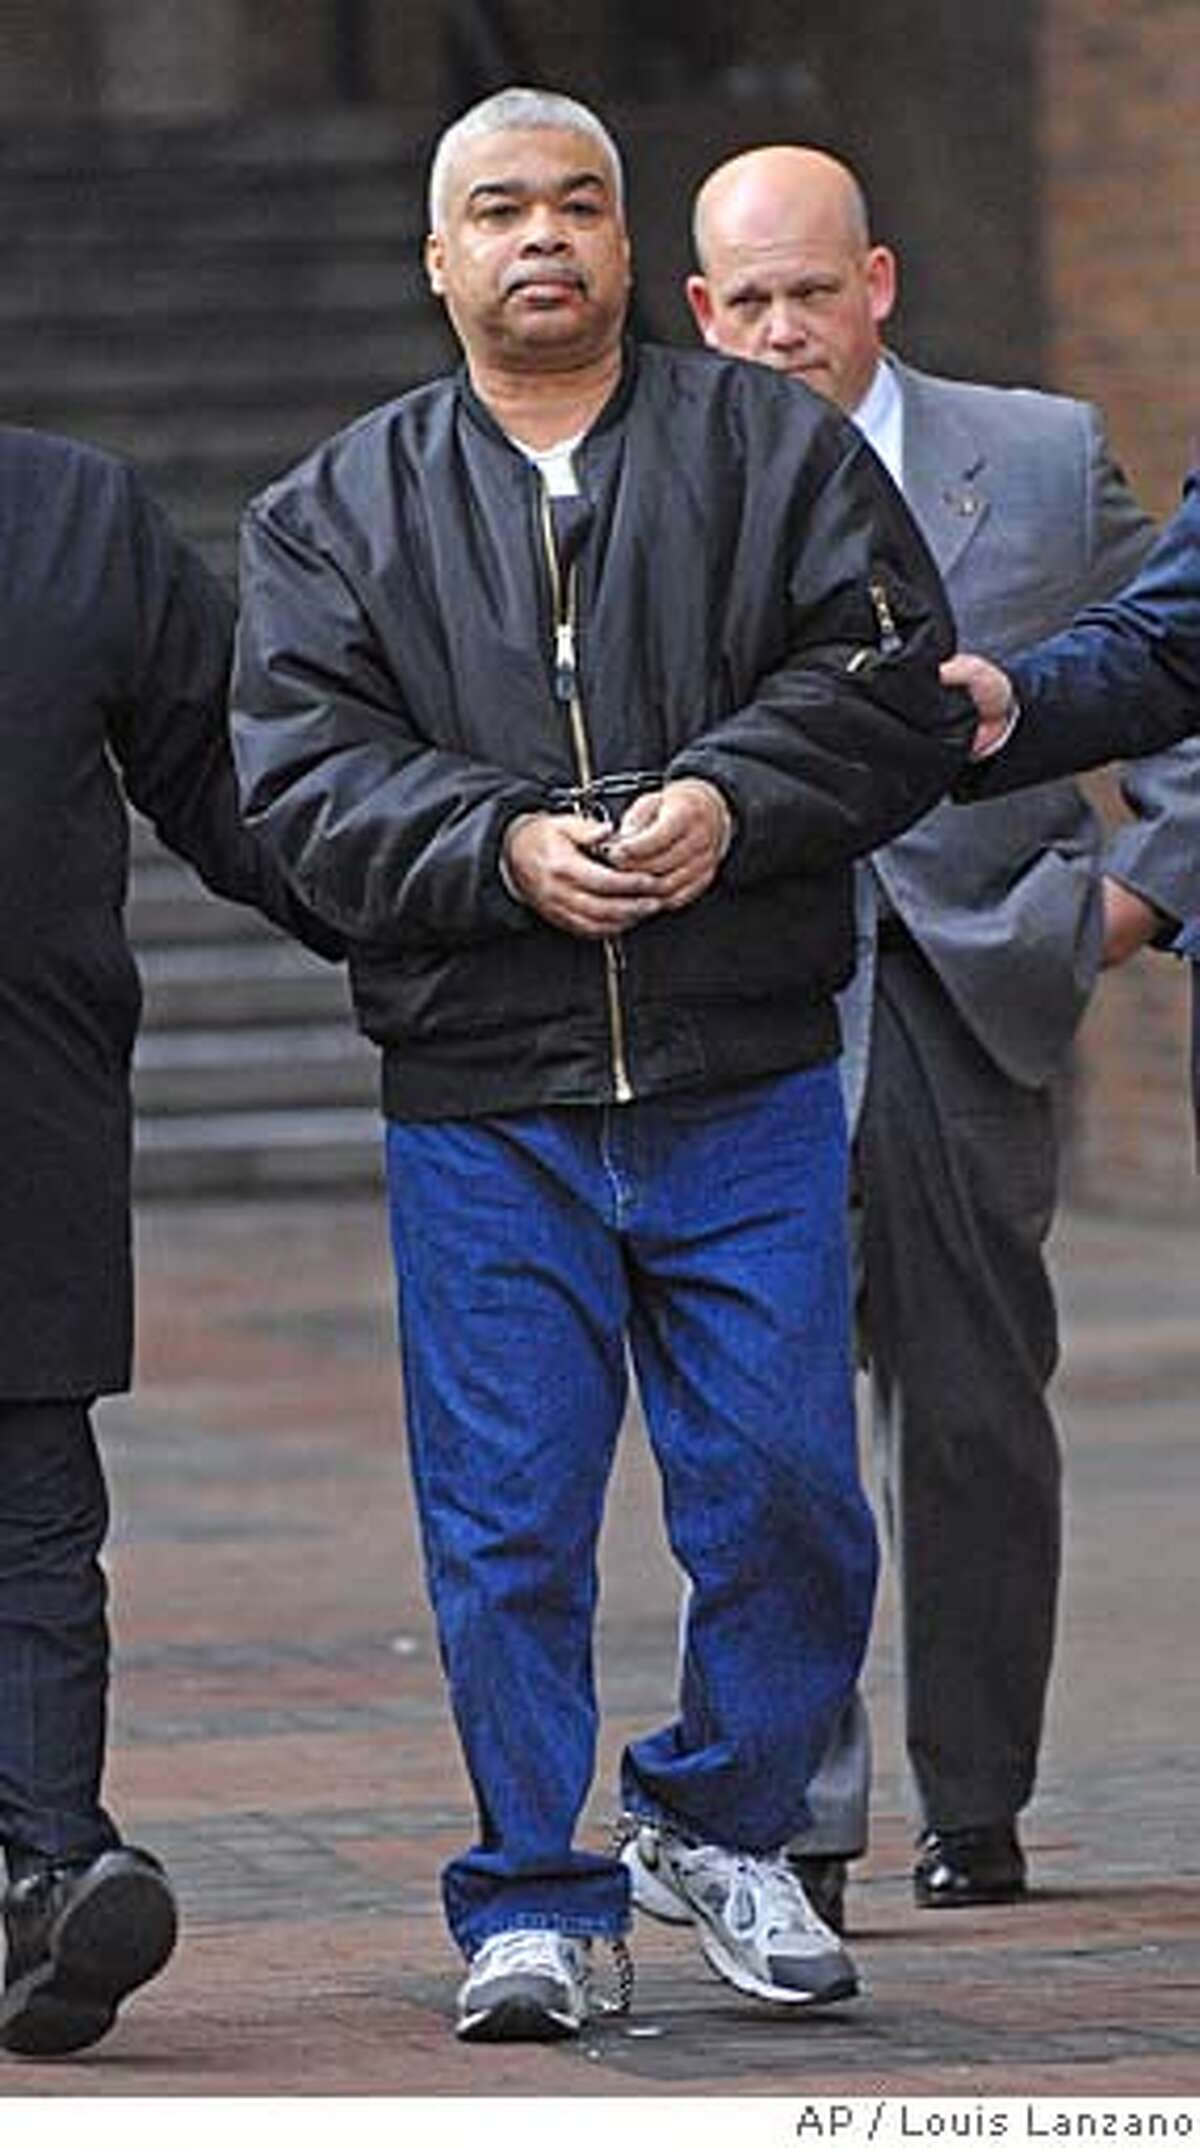 Francisco Torres is led by New York City detectives from One Police Plaza, Tuesday, Jan. 23, 2007, in New York. Torres was arrested in connection with the 1971 shooting death of police Sgt. John V. Young, 51 in San Francisco. (AP Photo/ Louis Lanzano)